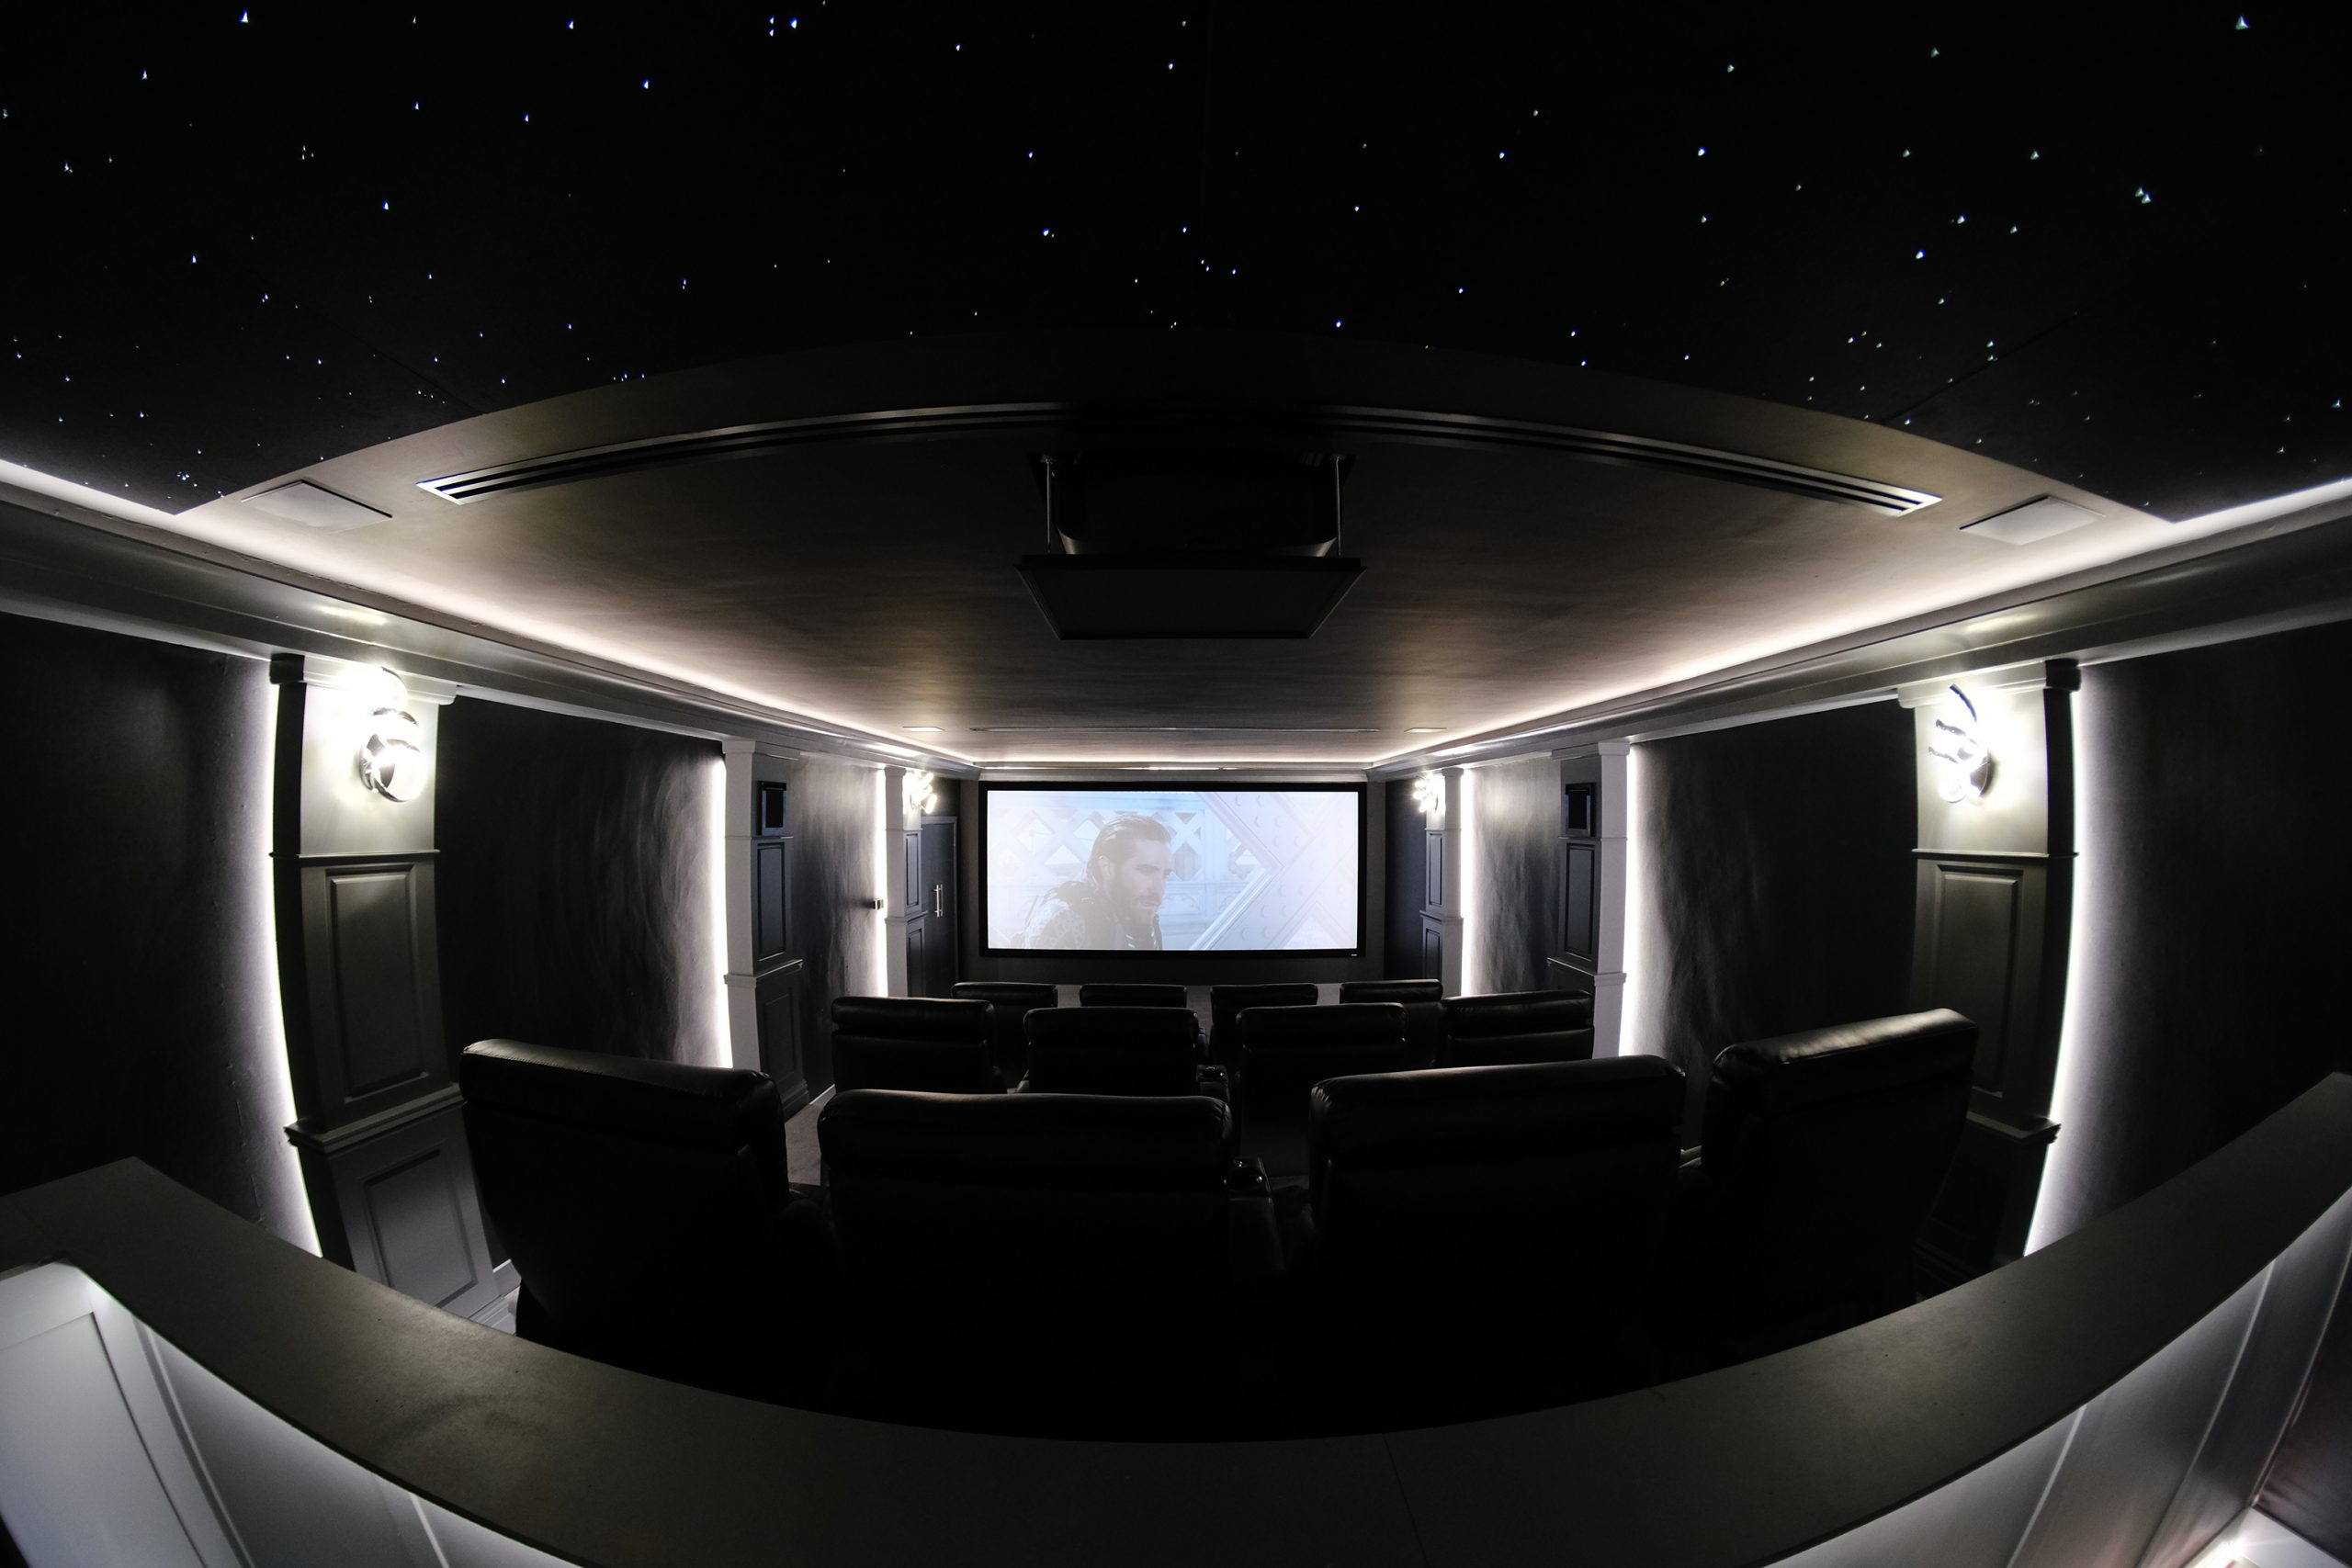 Home Cinema Rear View